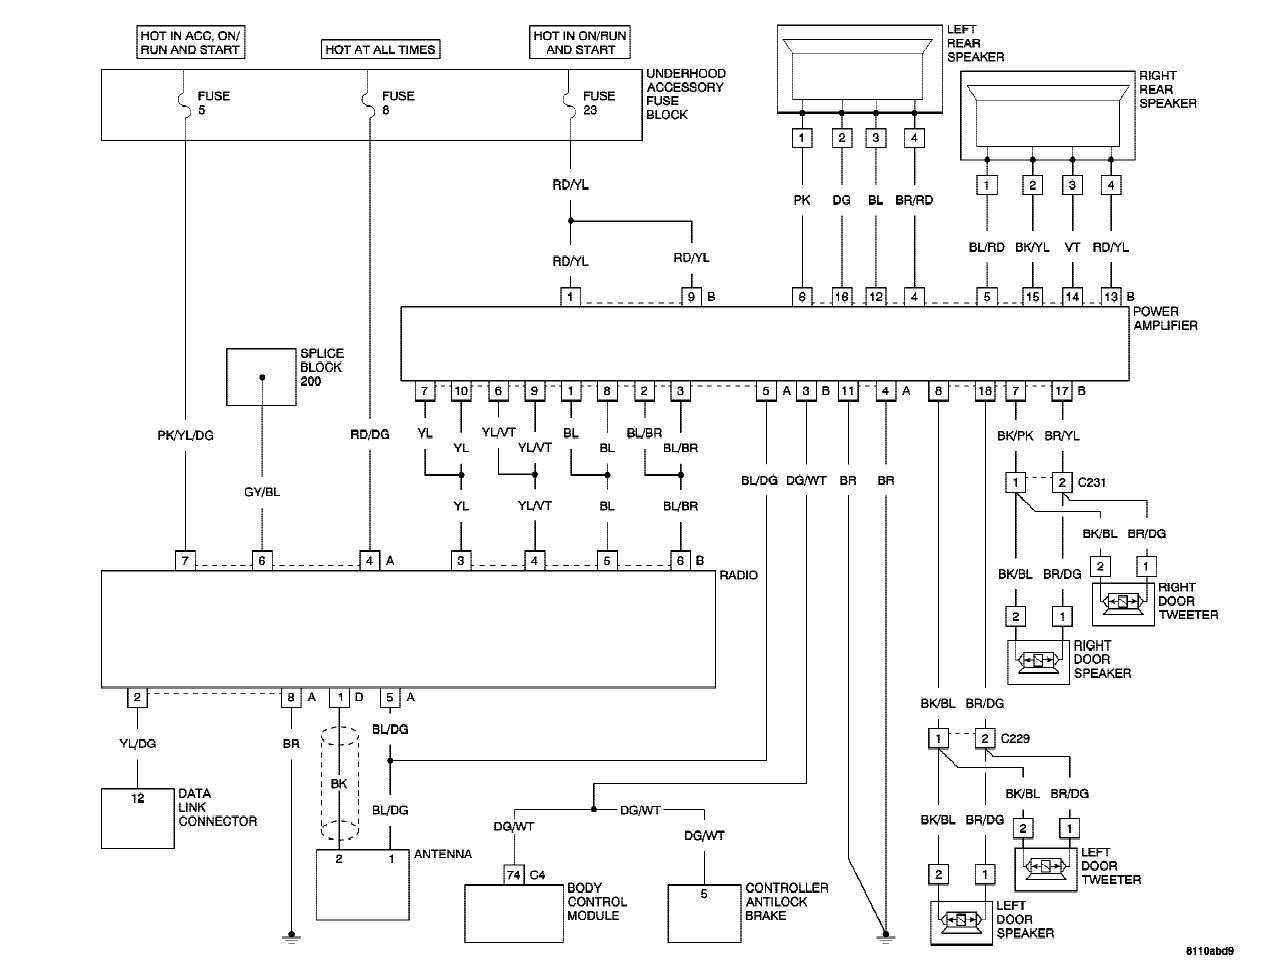 2004 chrysler pacifica radio wiring diagram - wiring diagram system  step-image - step-image.ediliadesign.it  ediliadesign.it